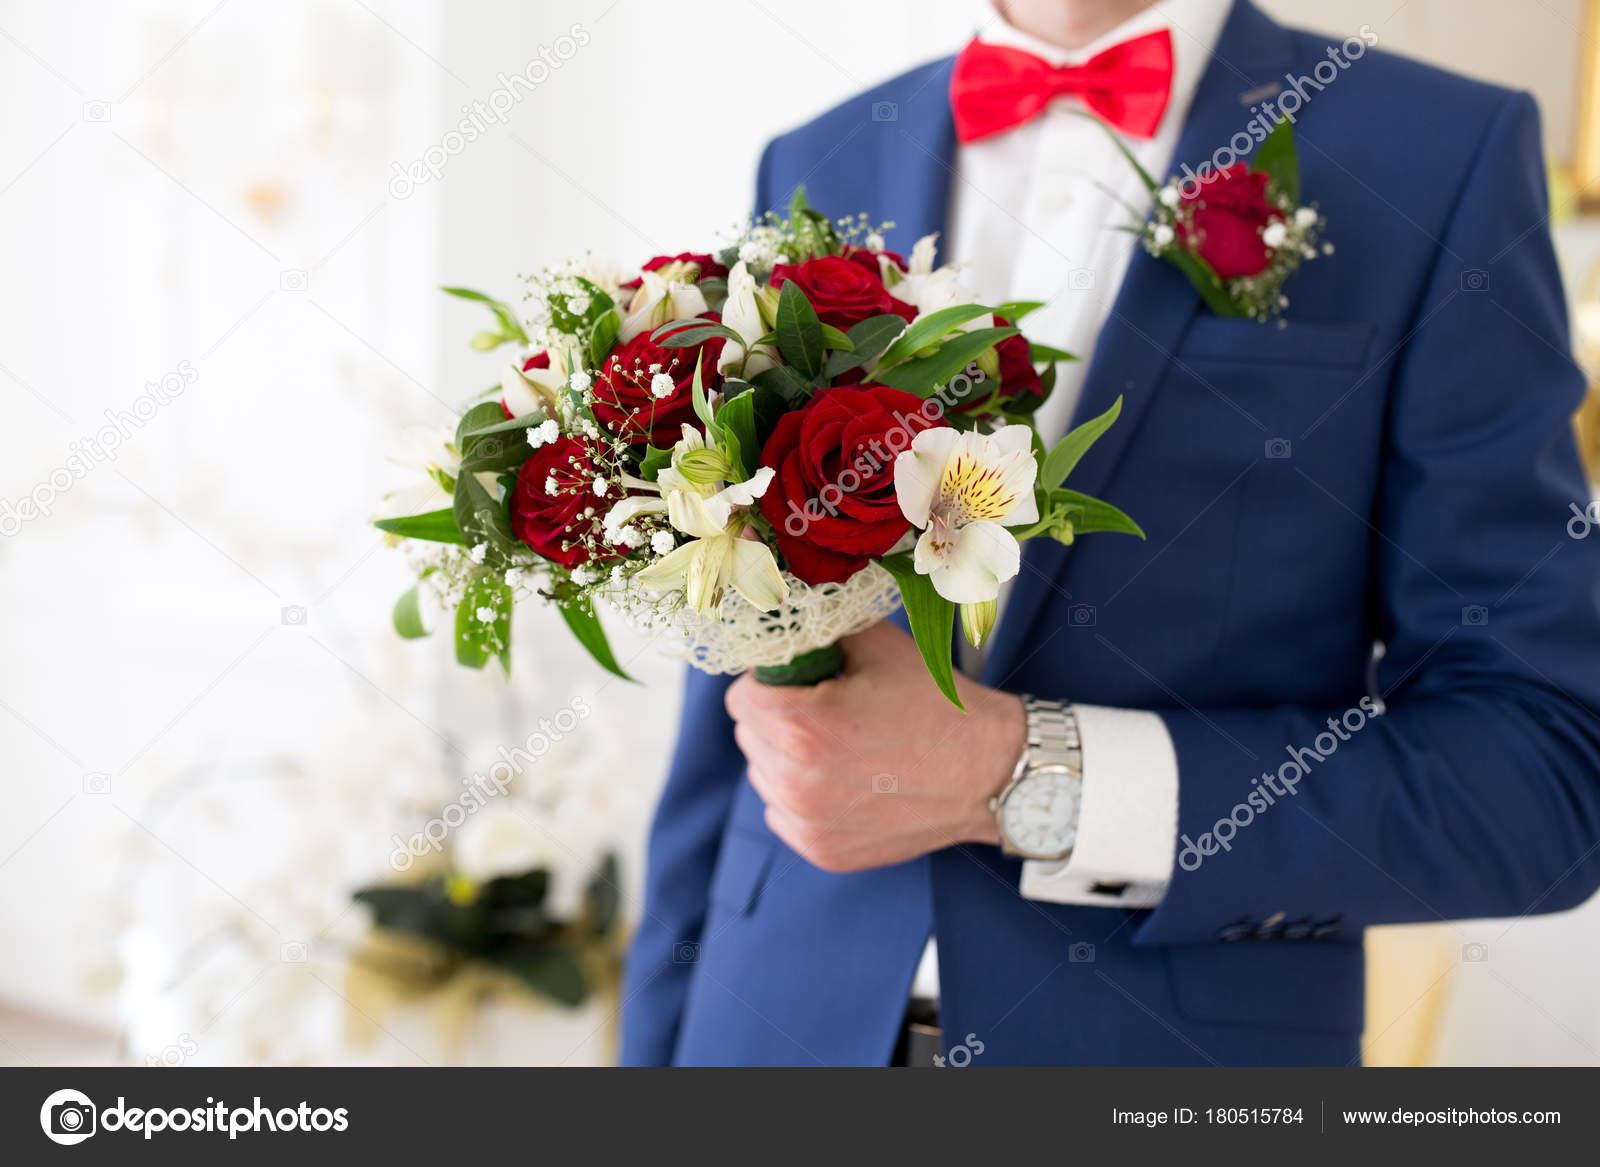 Man with flower bouquet — Stock Photo © OlgaOsa #180515784